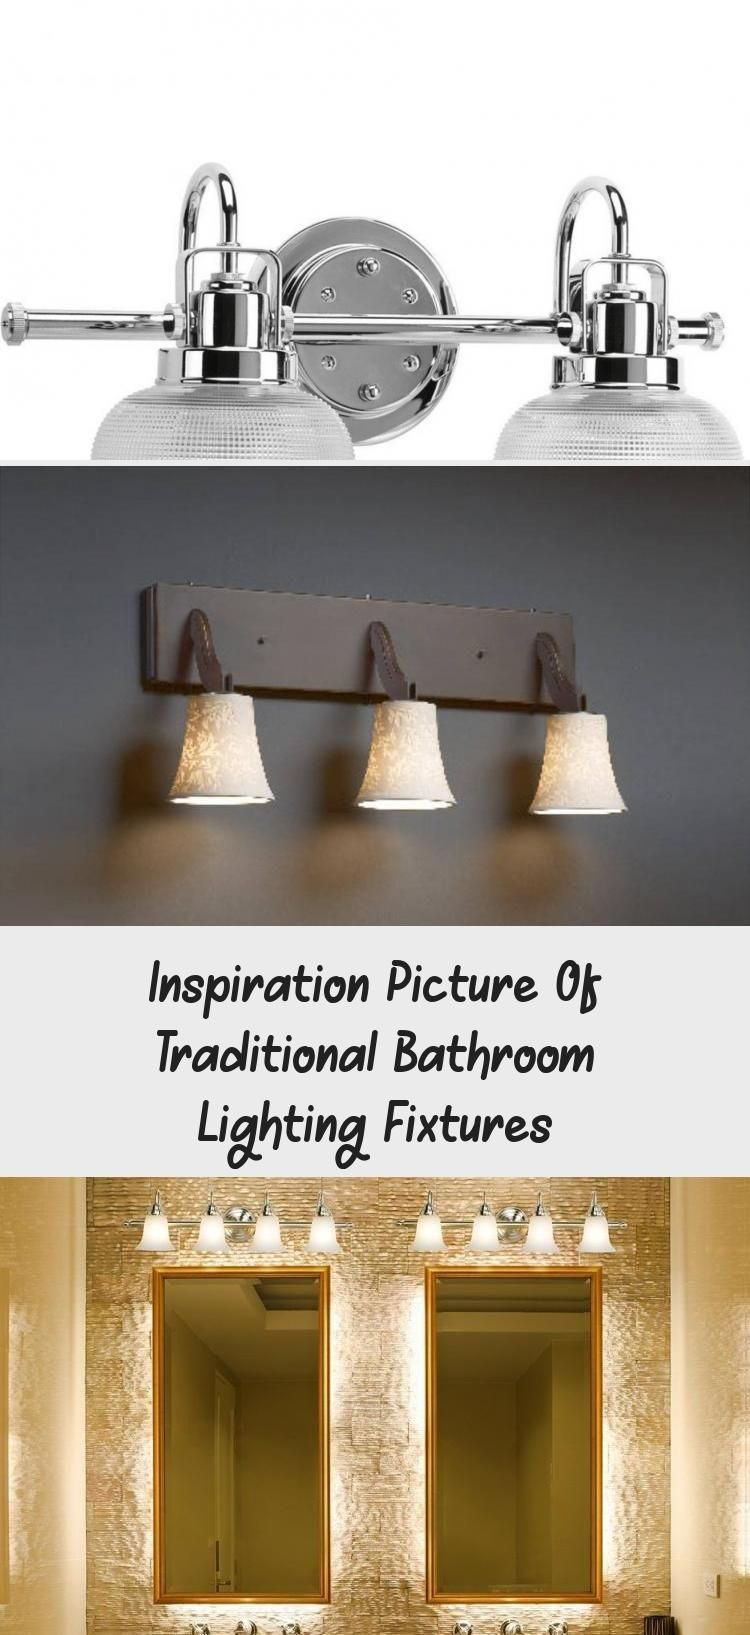 Inspiration Picture Of Traditional Bathroom Lighting Fixtures Traditional Bathroom L In 2020 Traditional Bathroom Lighting Traditional Bathroom Bathroom Light Fixtures